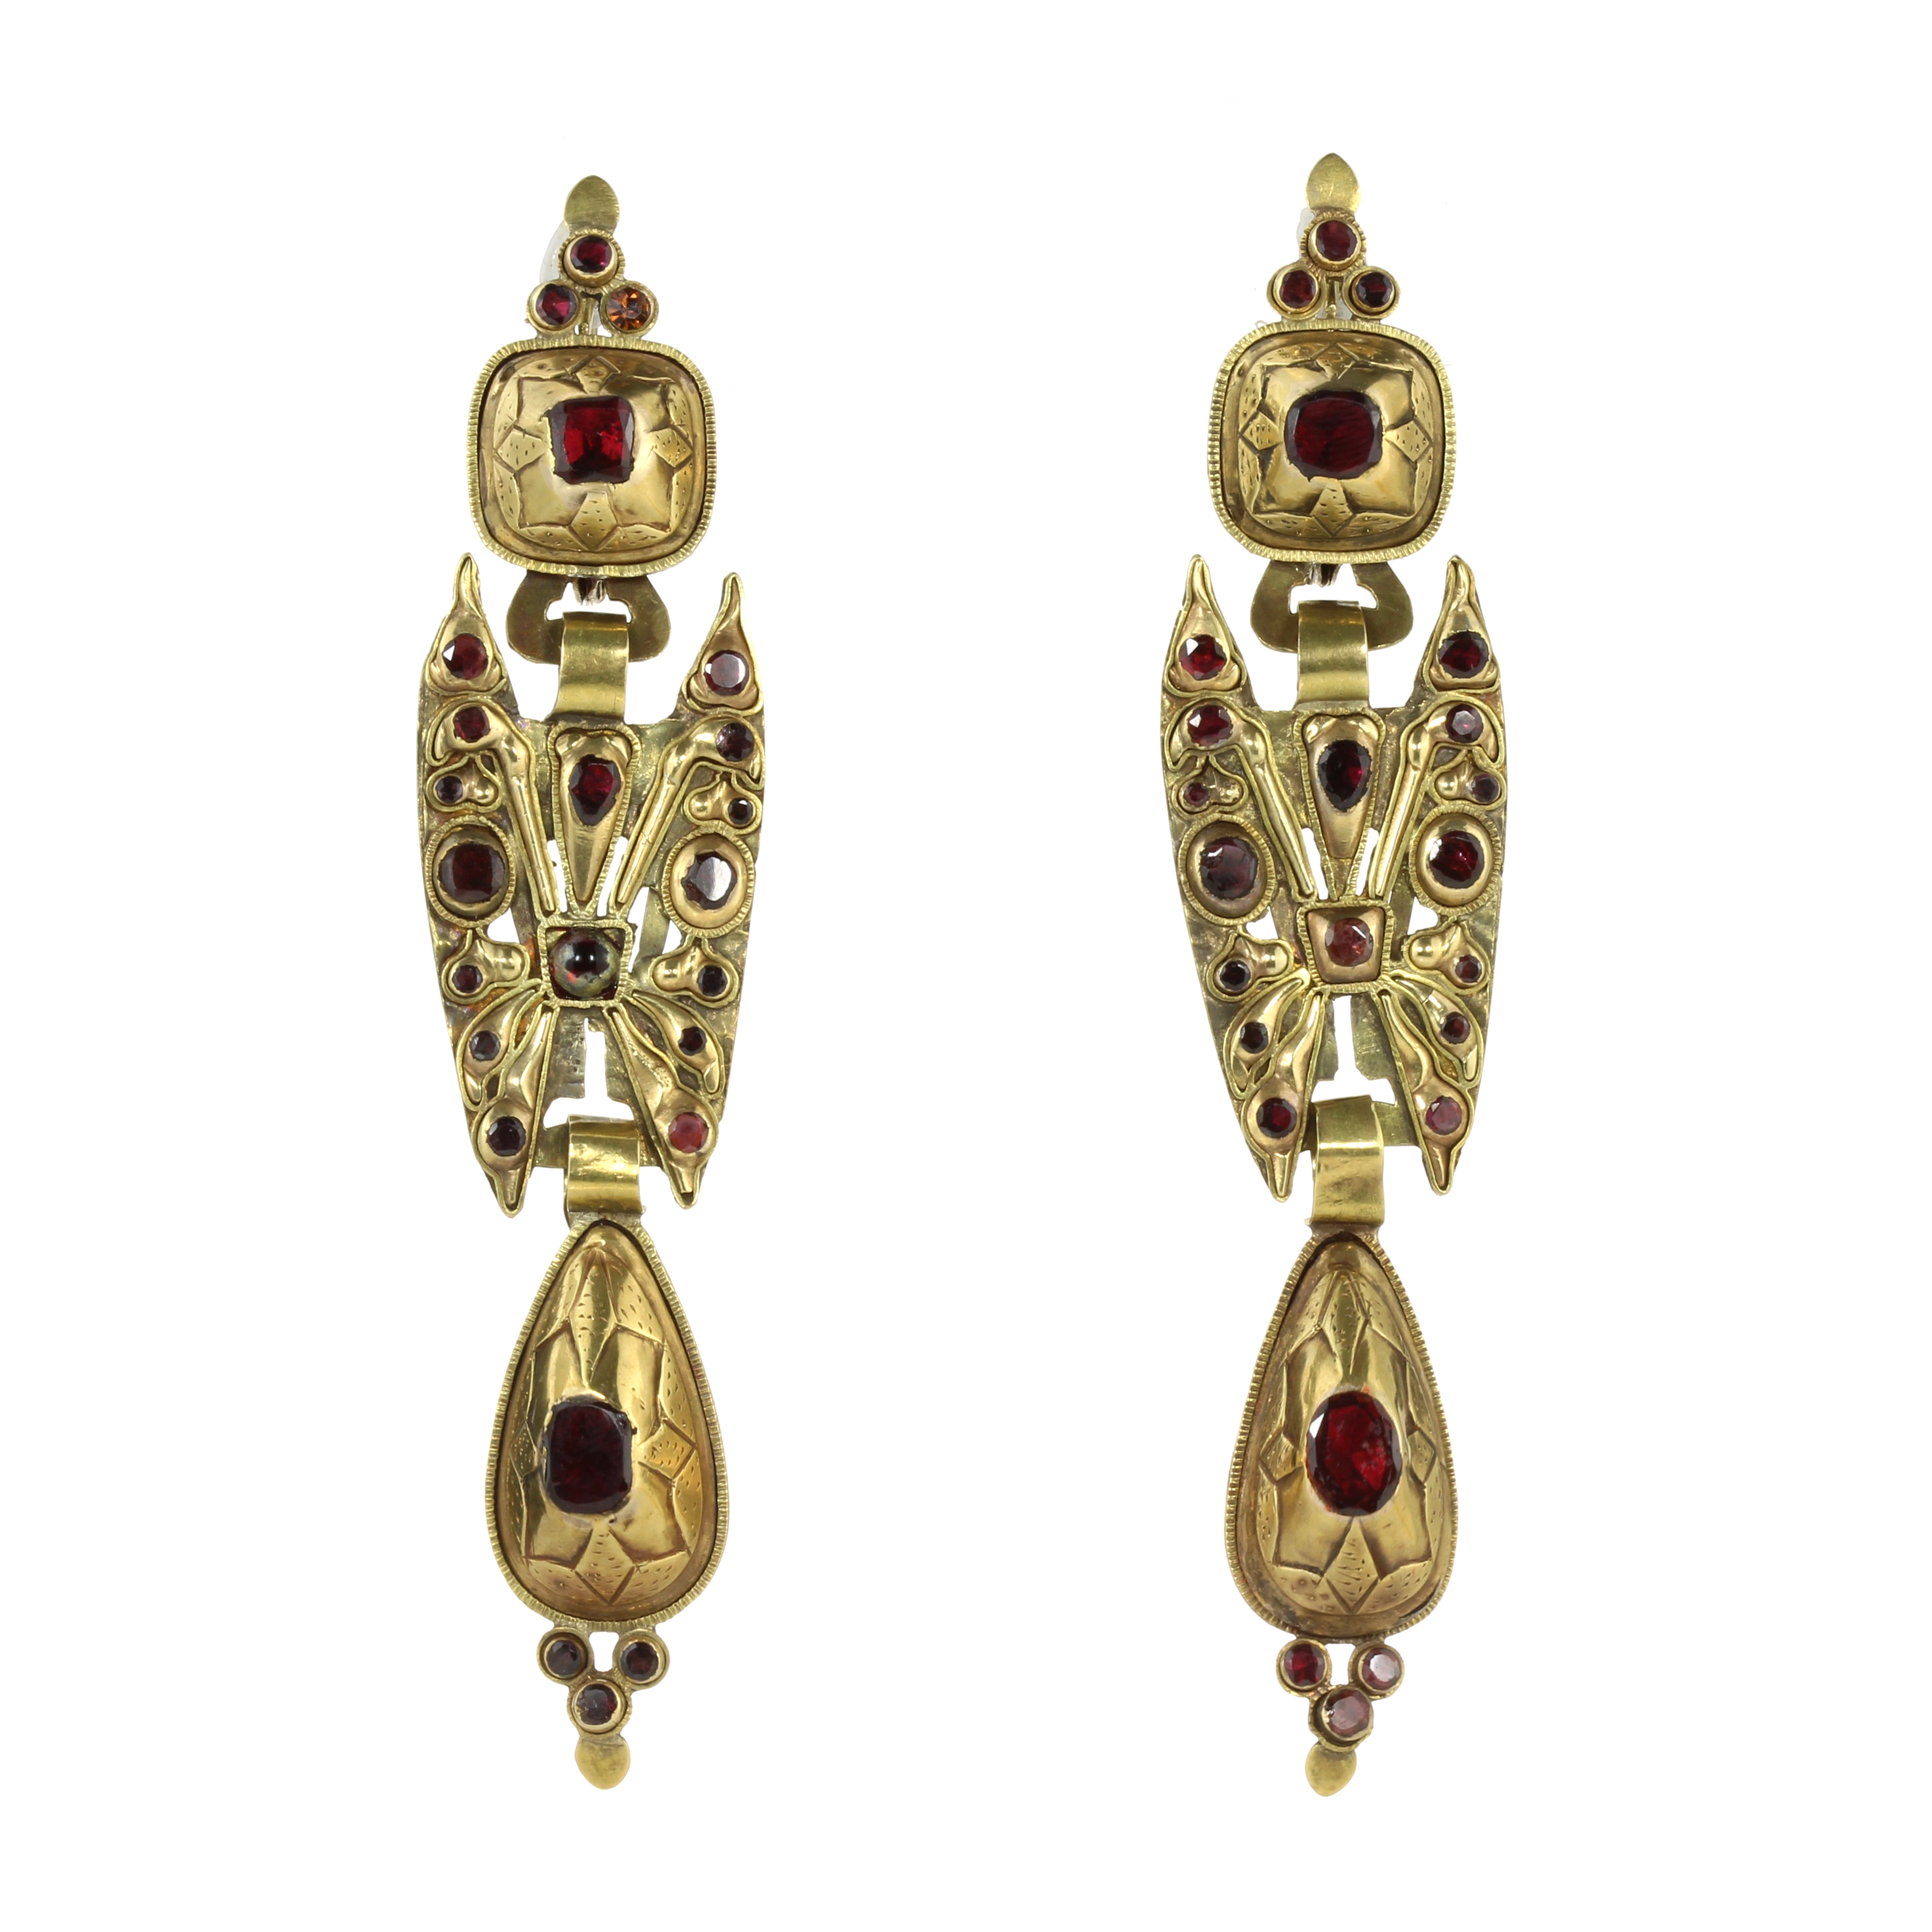 A PAIR OF ANTIQUE GARNET EARRINGS, CATALAN CIRCA 1790 in high carat yellow gold, each formed of